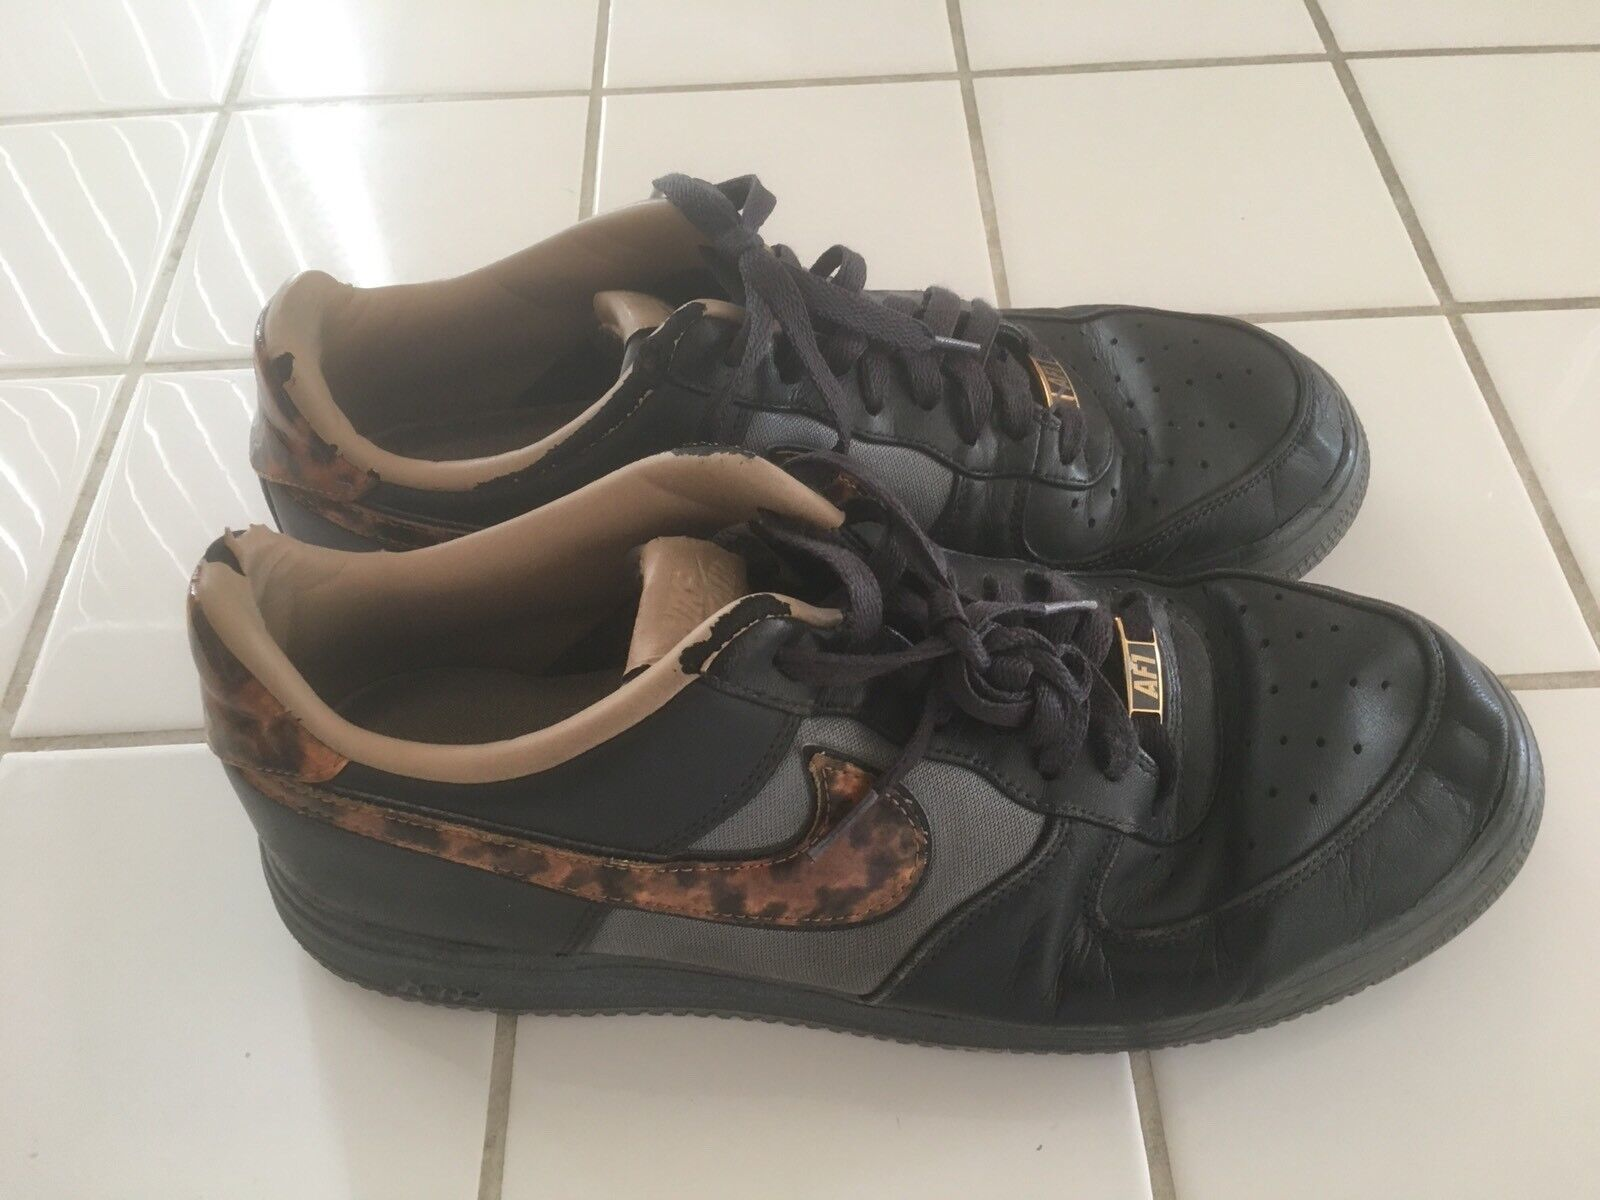 68b15185761c Nike Lunar Force 1 Low Top Athletic Shoes. Size 11.5. 11.5. 11.5 ...